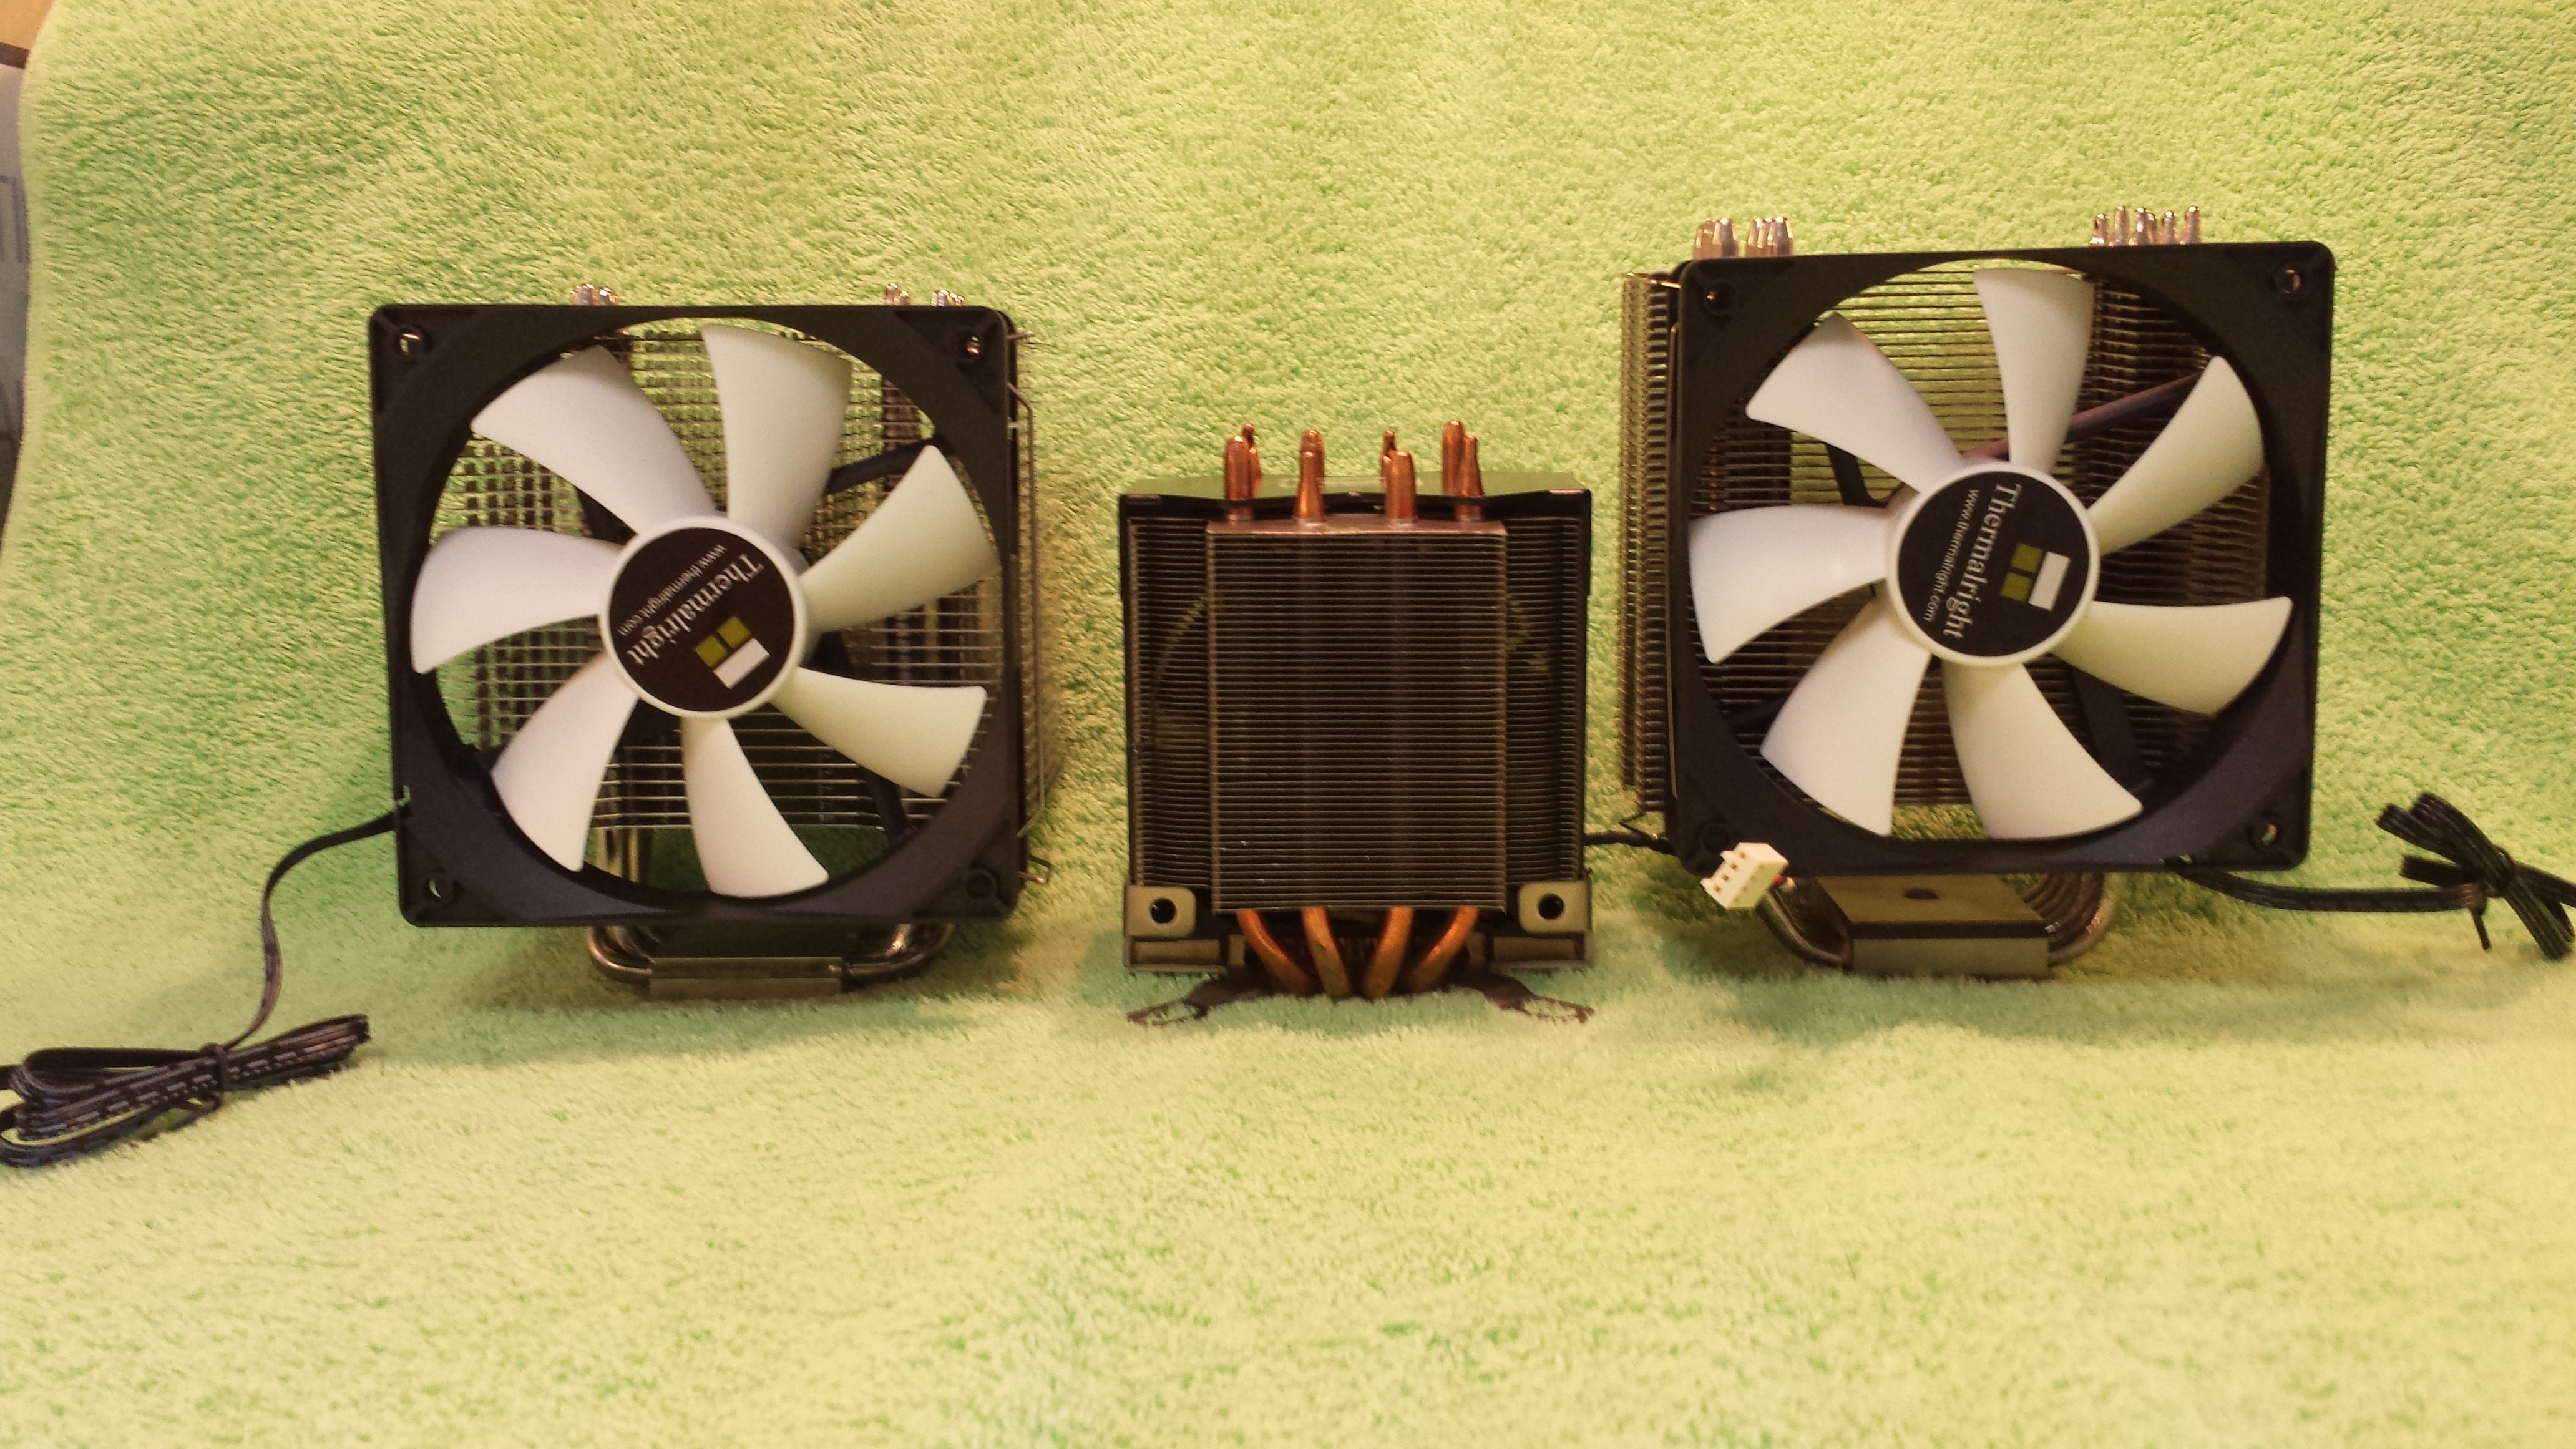 Macho120, Dell, Venomous all with fans installed. Low mounted fan will cool VRMs on Dell.